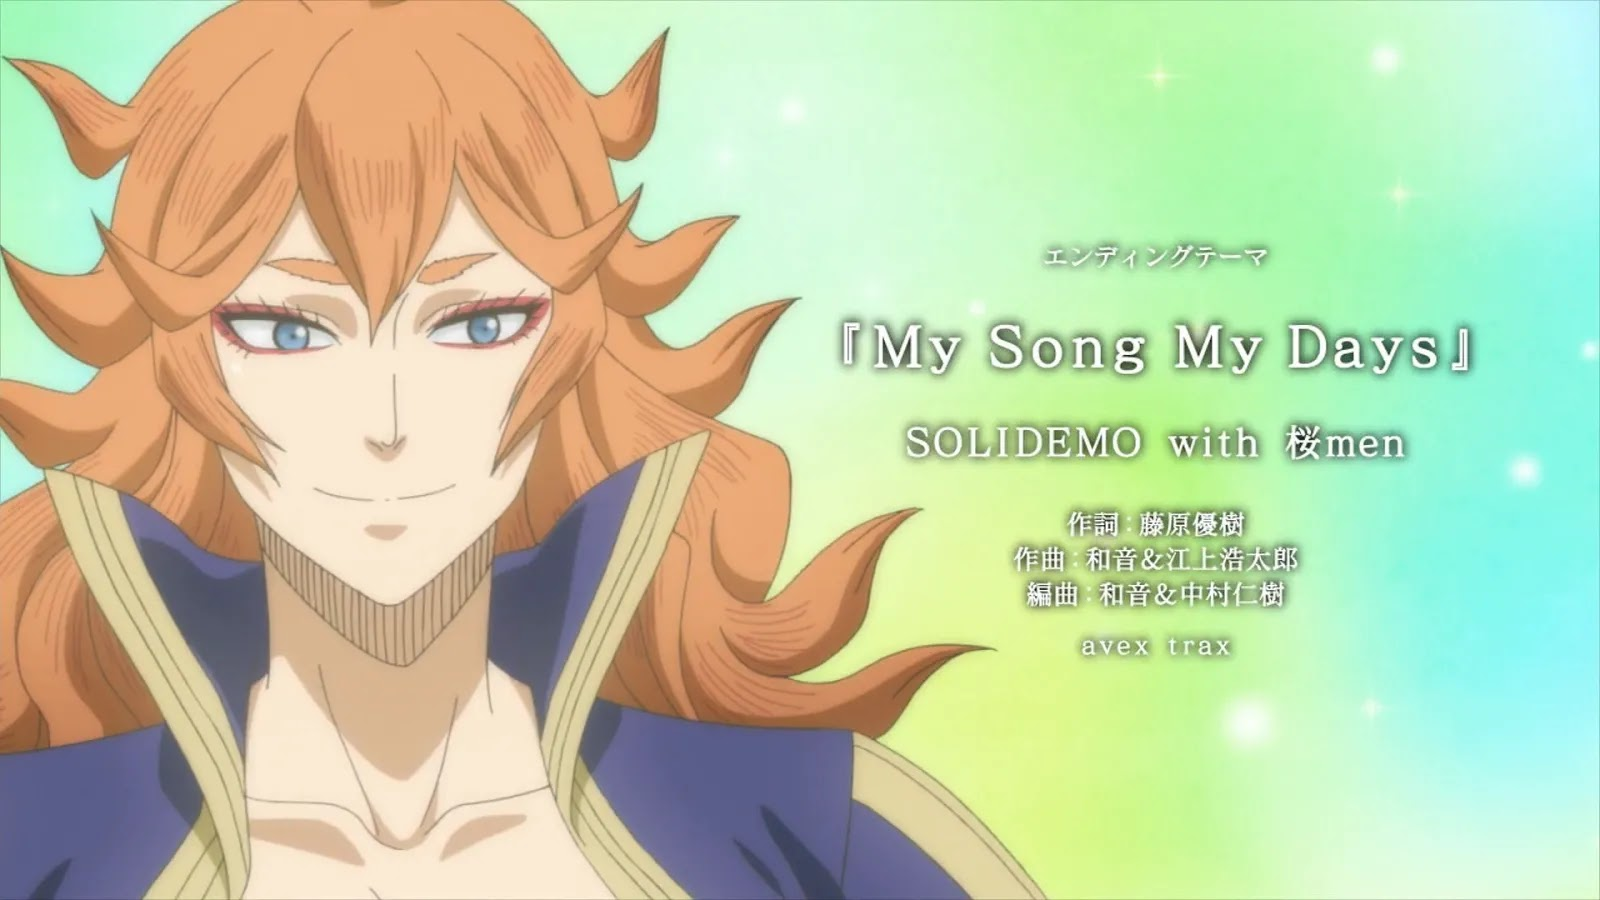 SOLIDEMO with Sakuramen - My Song My Days detail lyrics kanji romaji english Ending #6 Black Clover